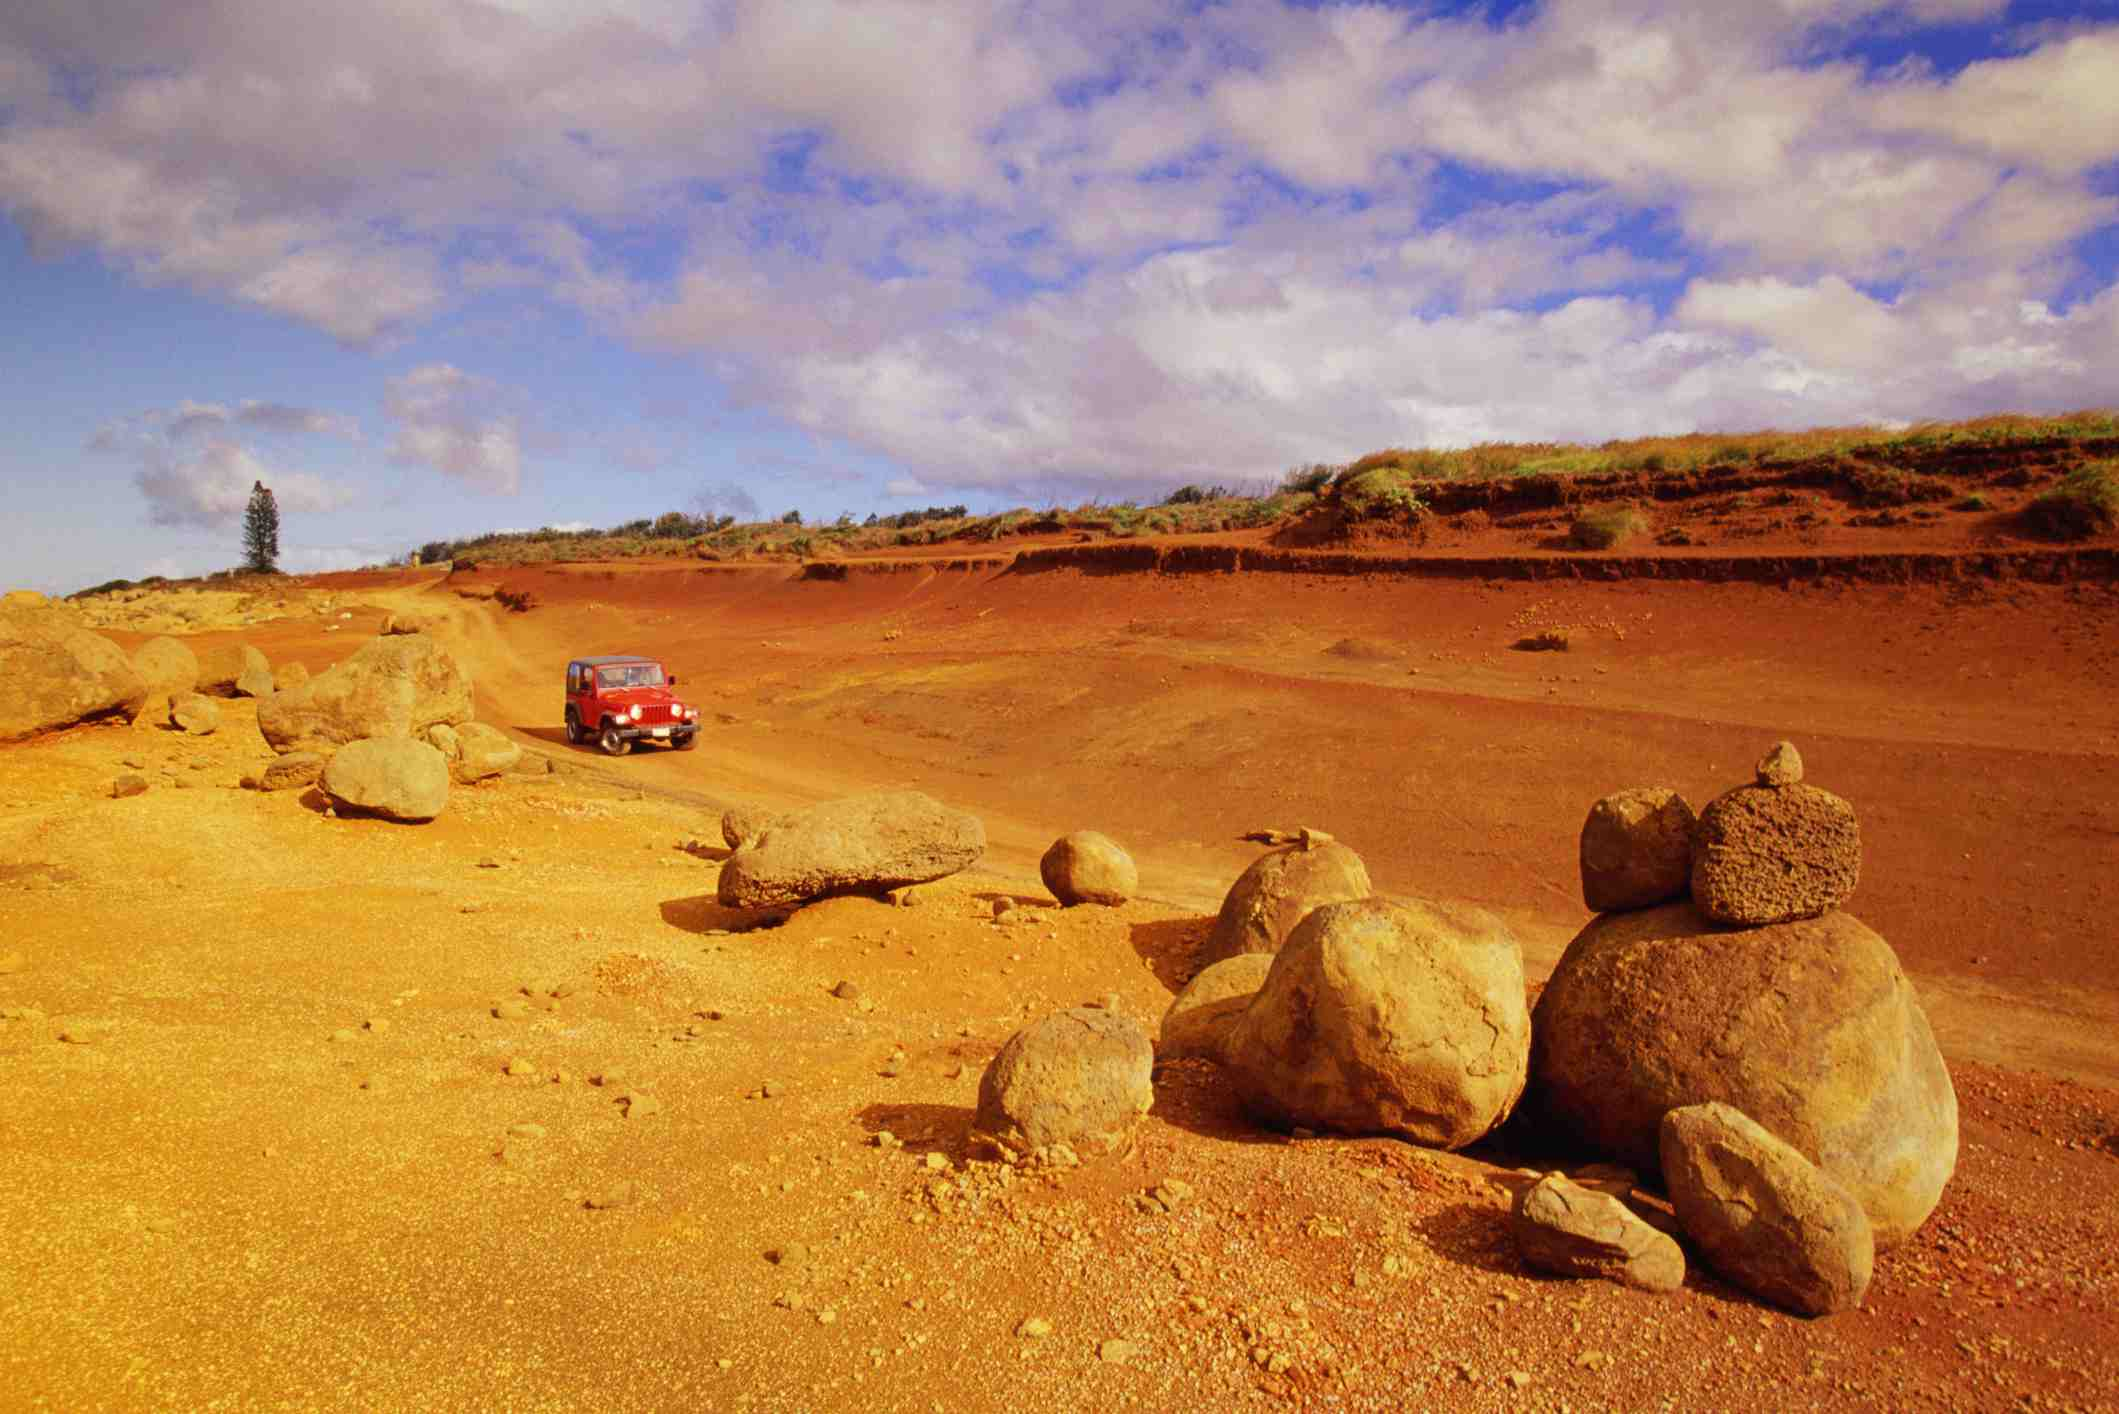 Lanai, Garden of the Gods, Red dirt road and 4x4